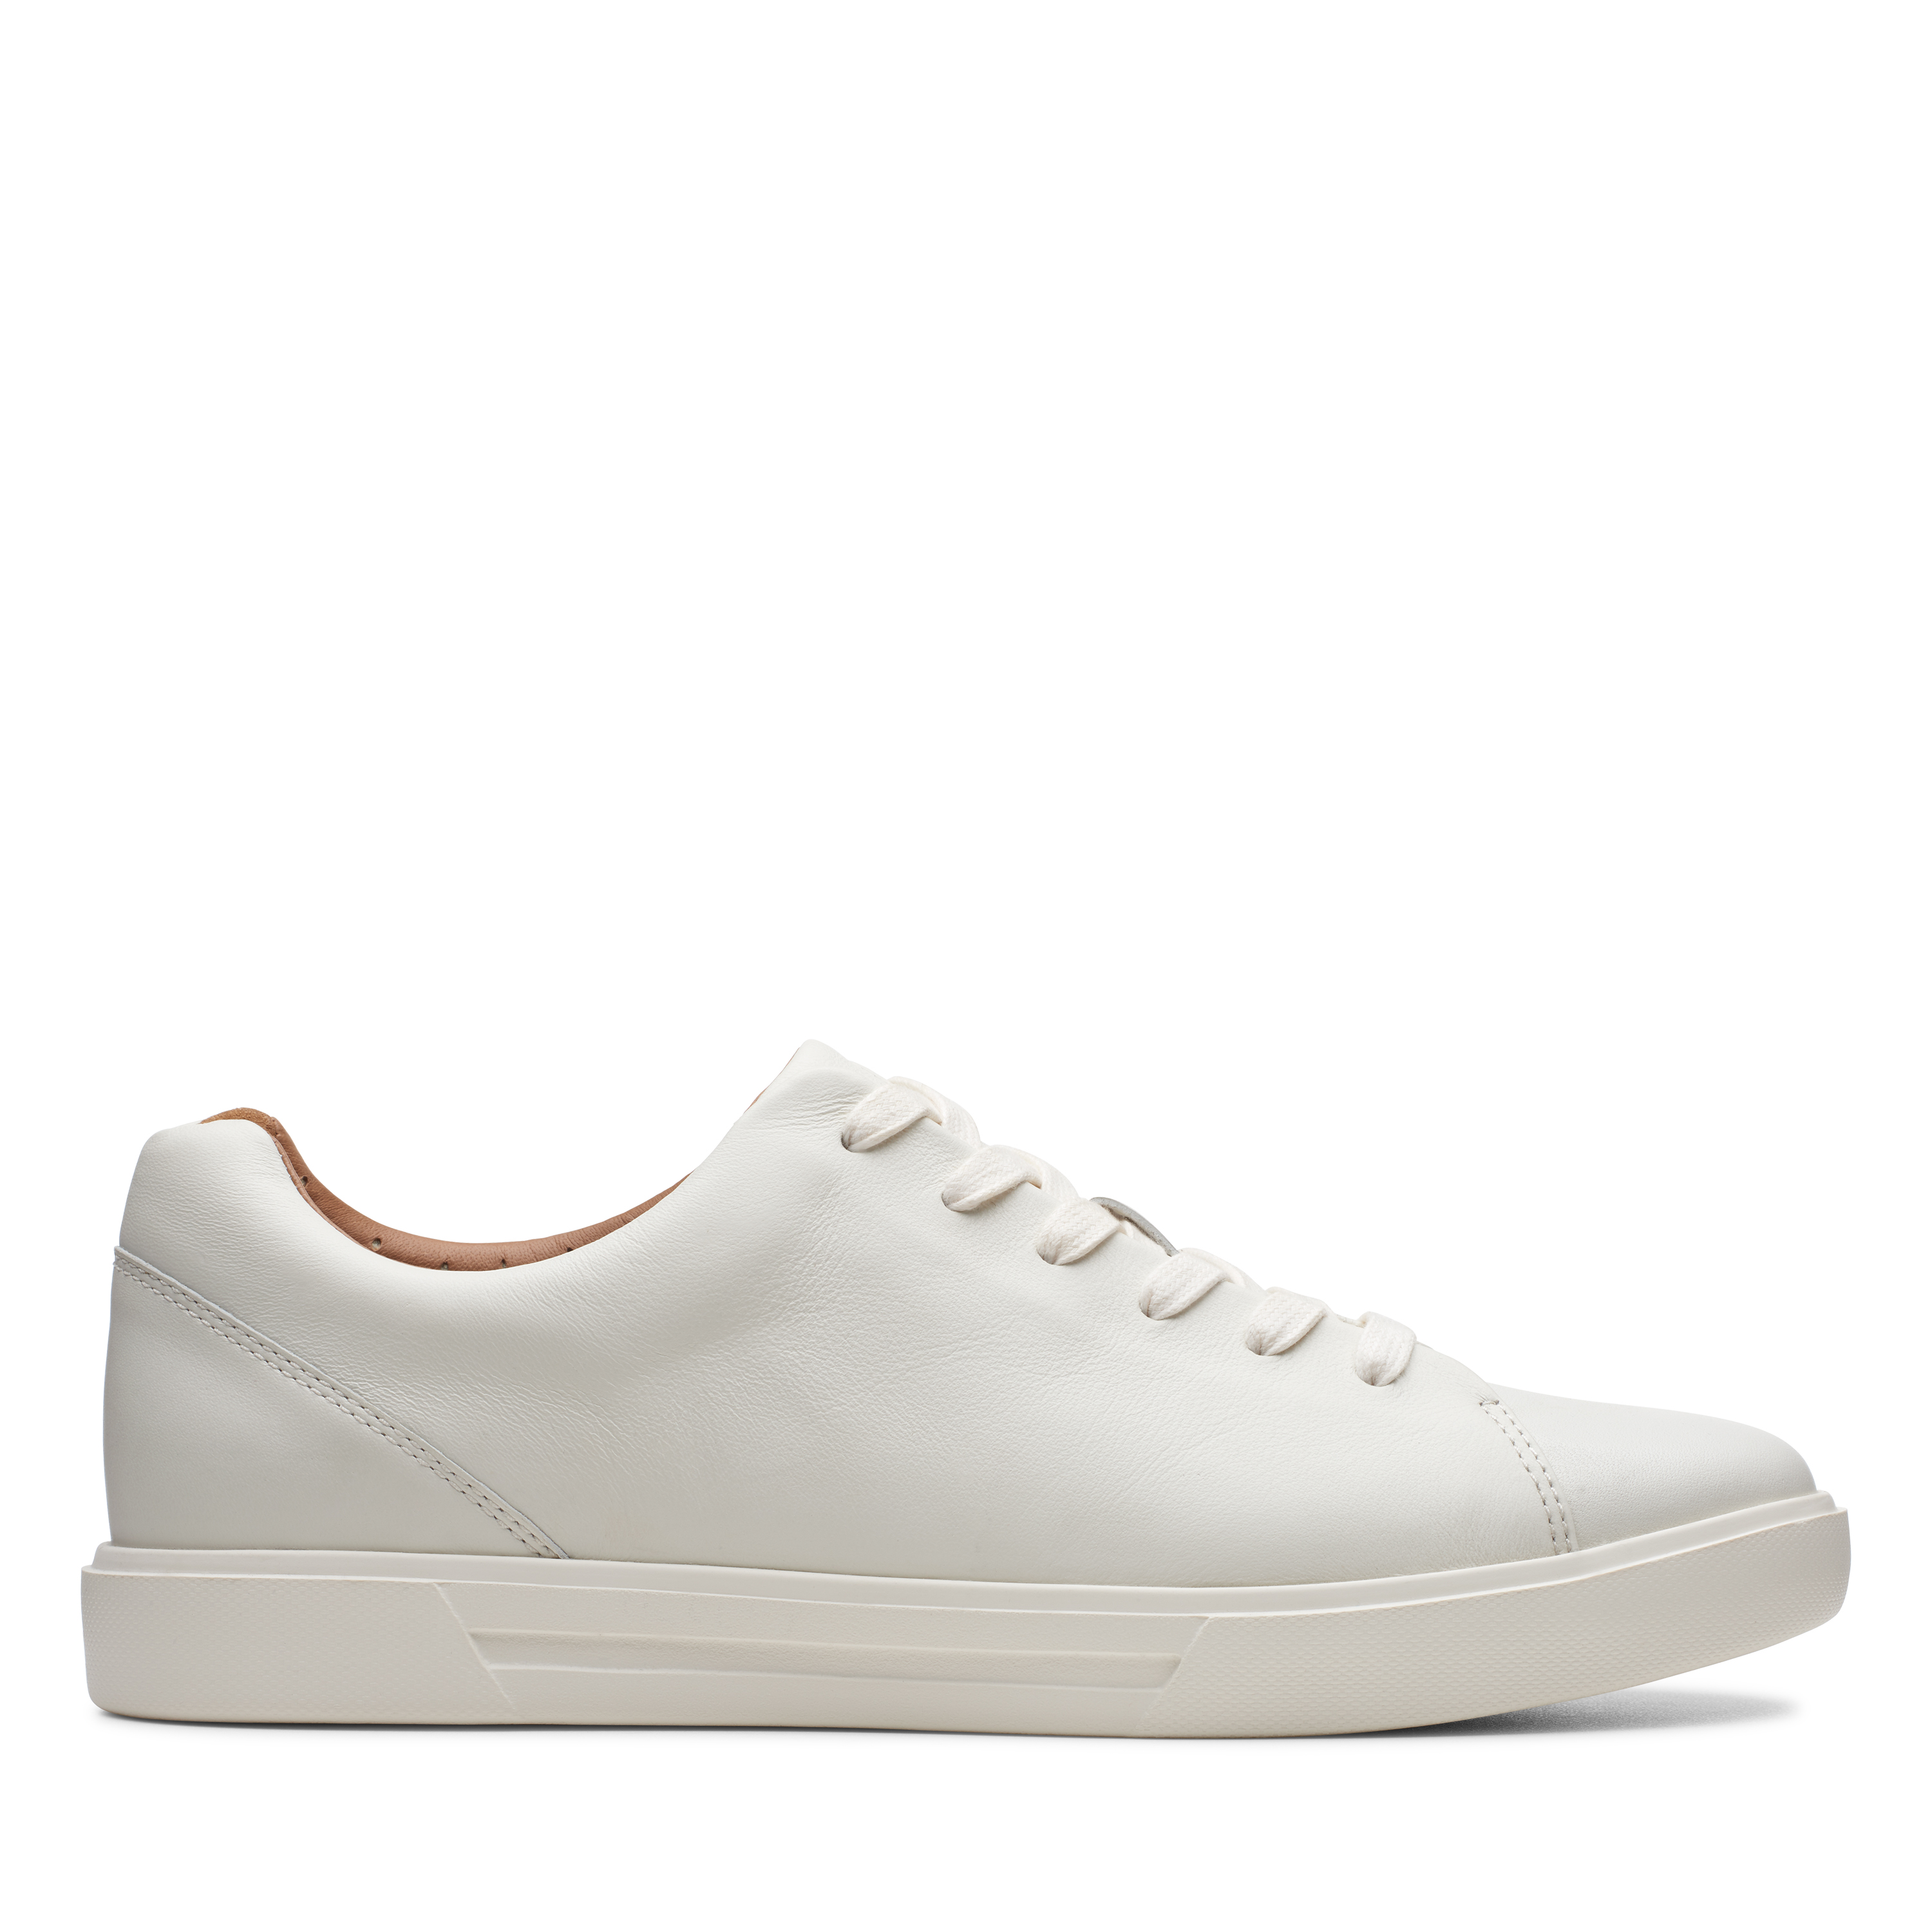 Clarks   Un Costa Lace White Leather Casual Lace-ups